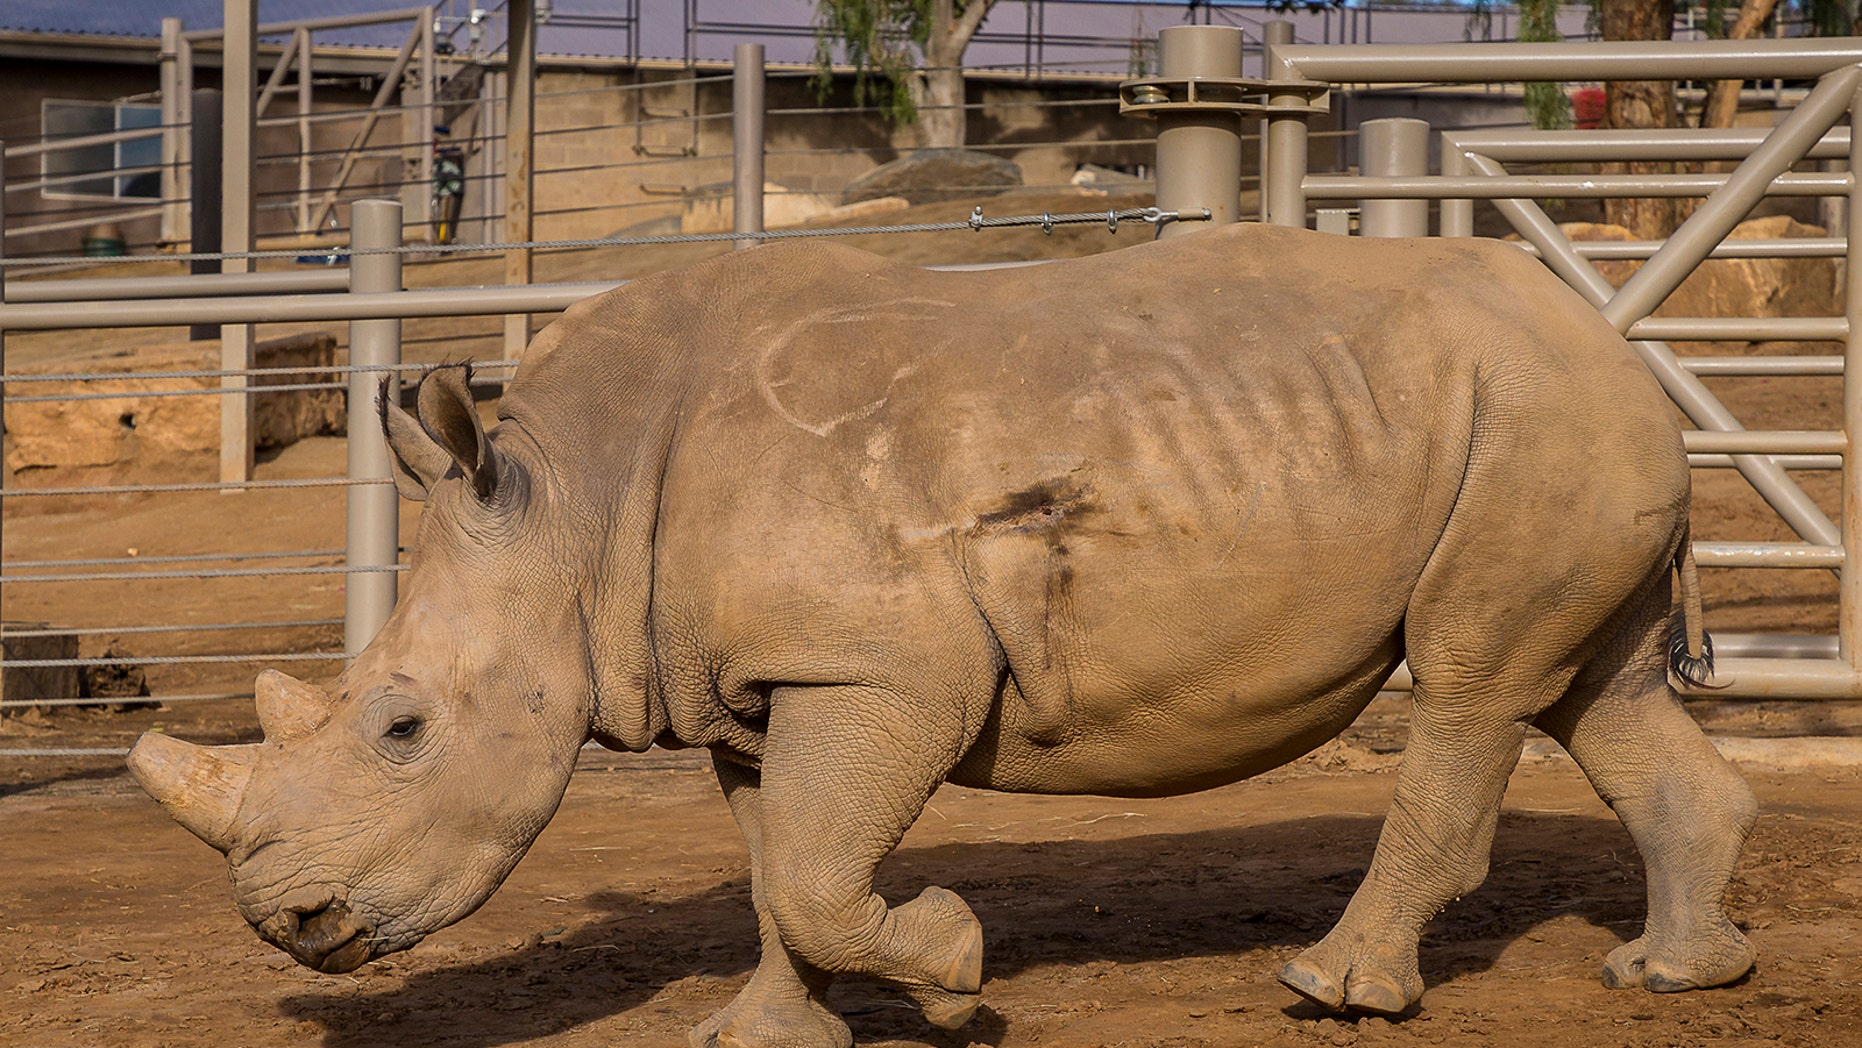 The wounded rhino.